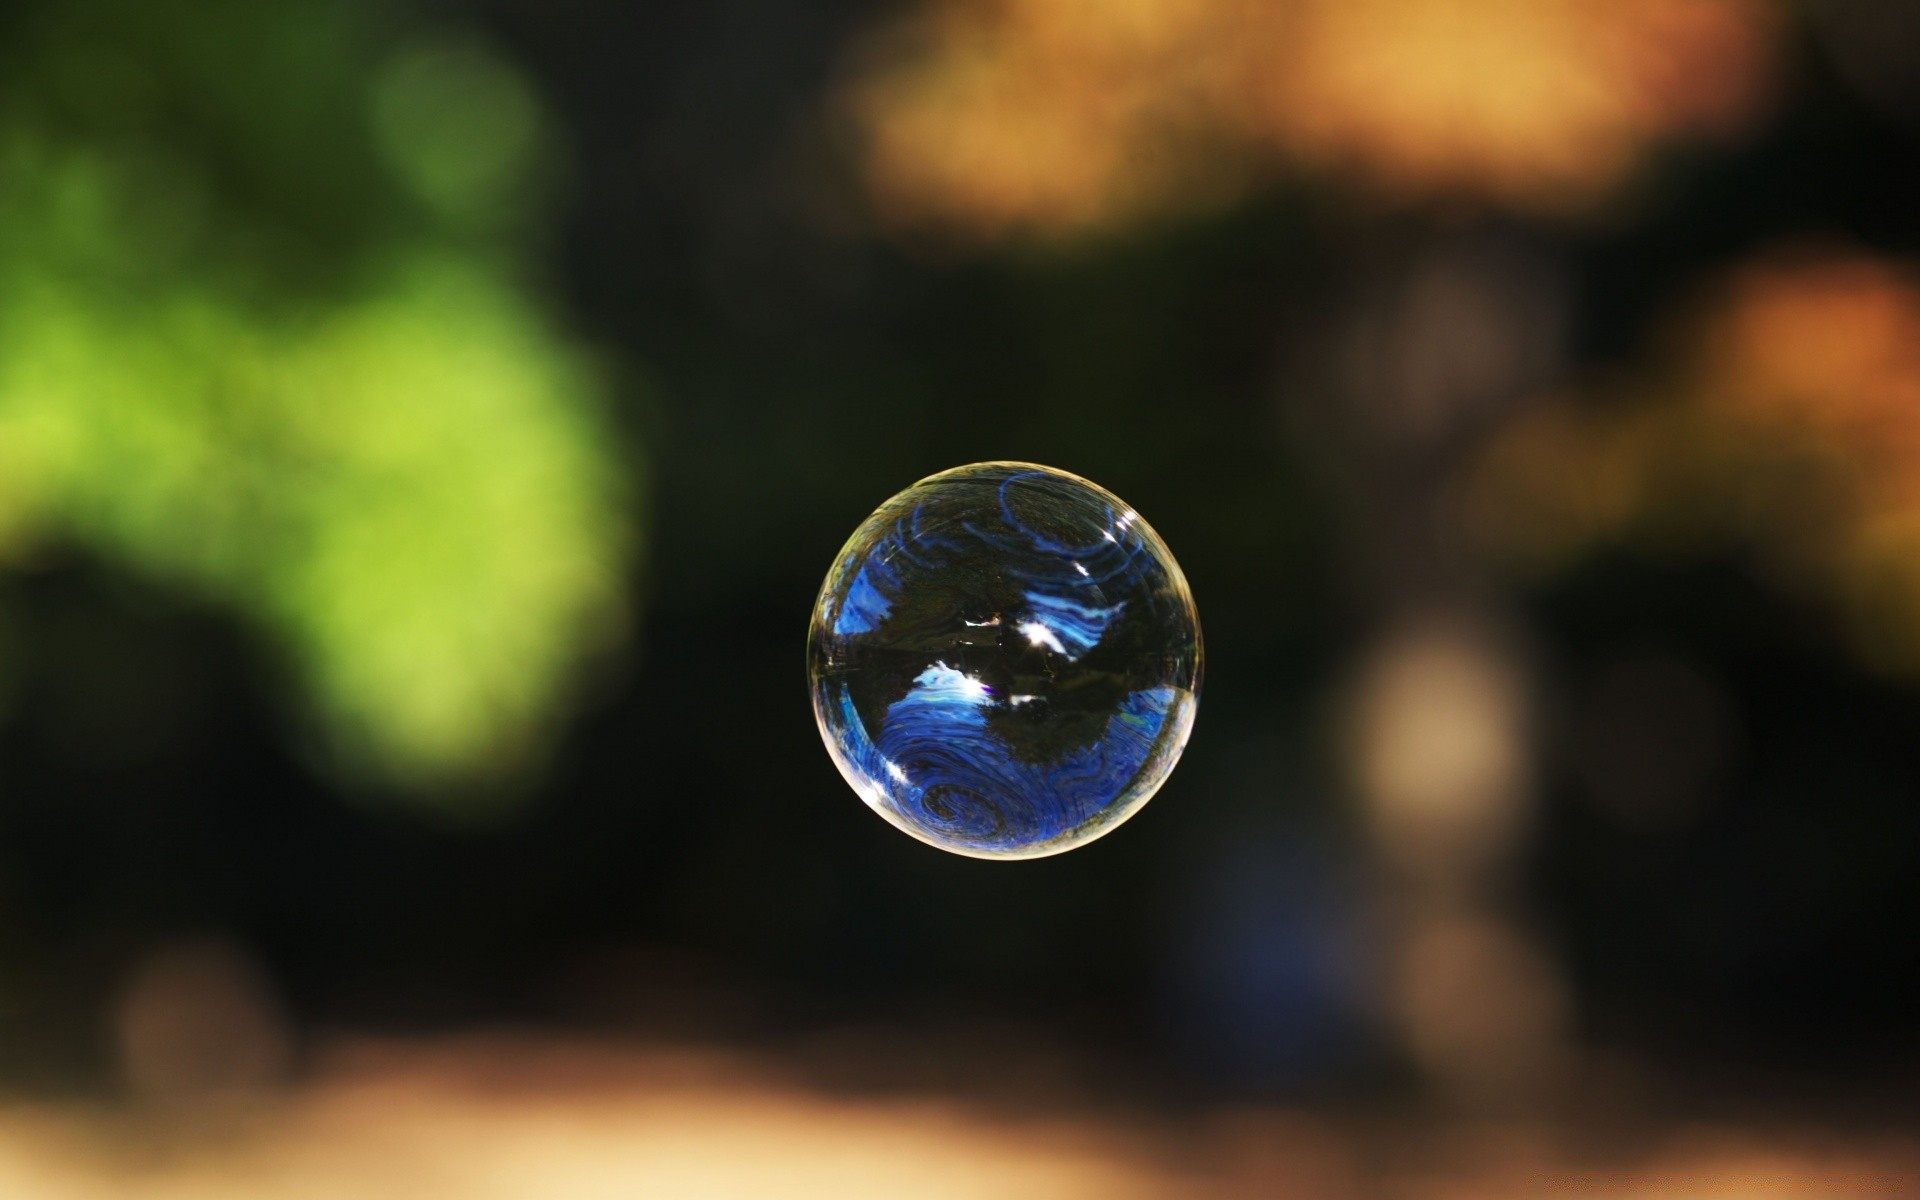 Soap Bubble IPhone Wallpapers For Free